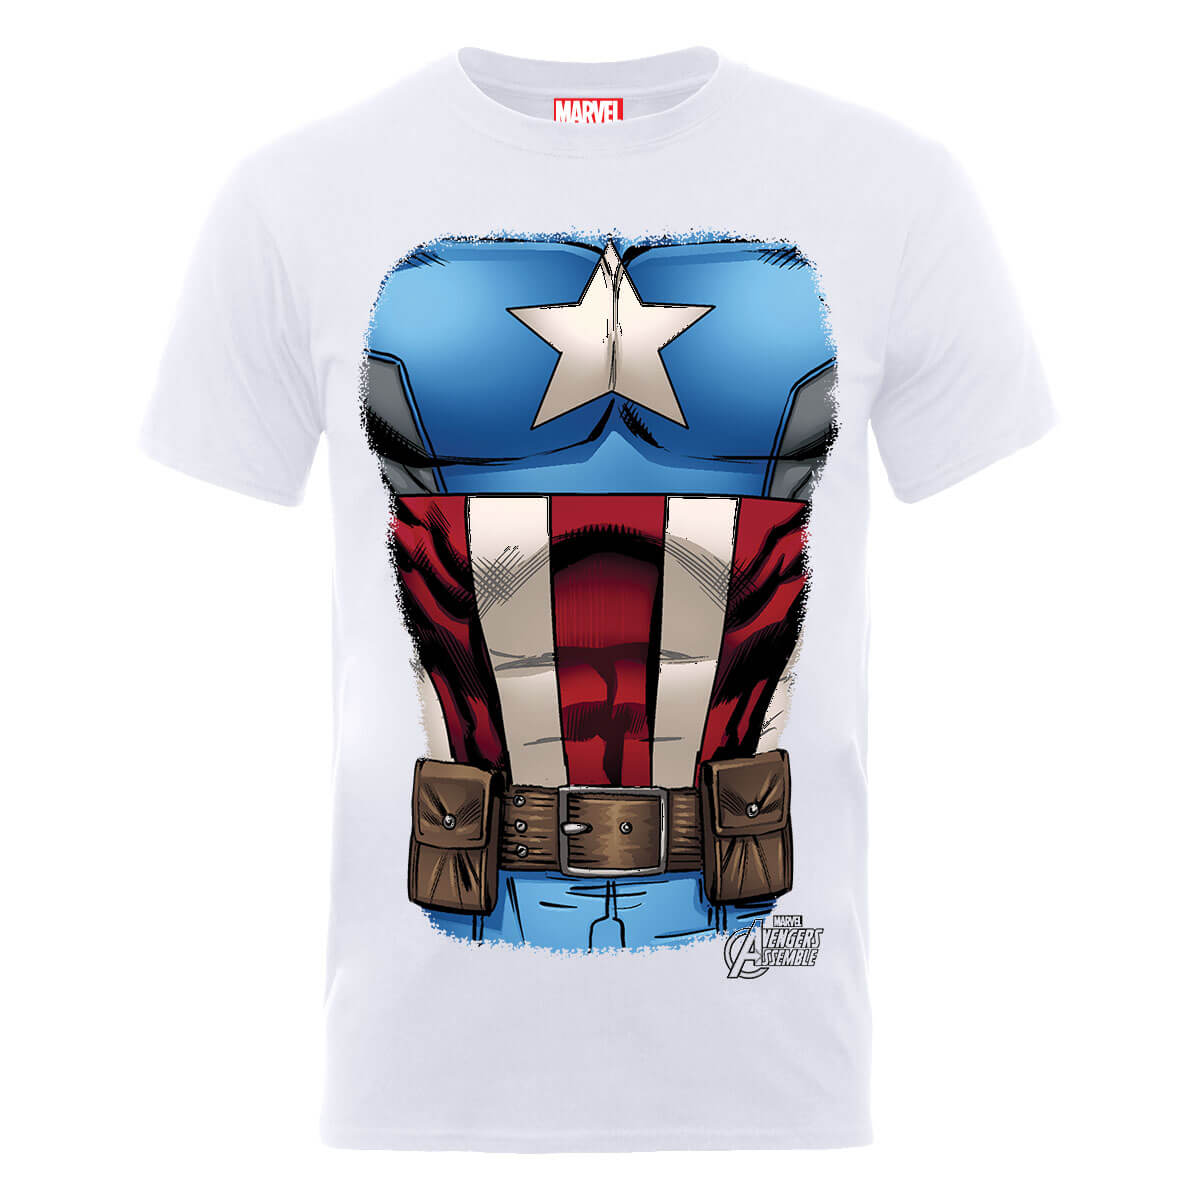 Marvel Avengers Assemble Captain America Chest T-Shirt - White